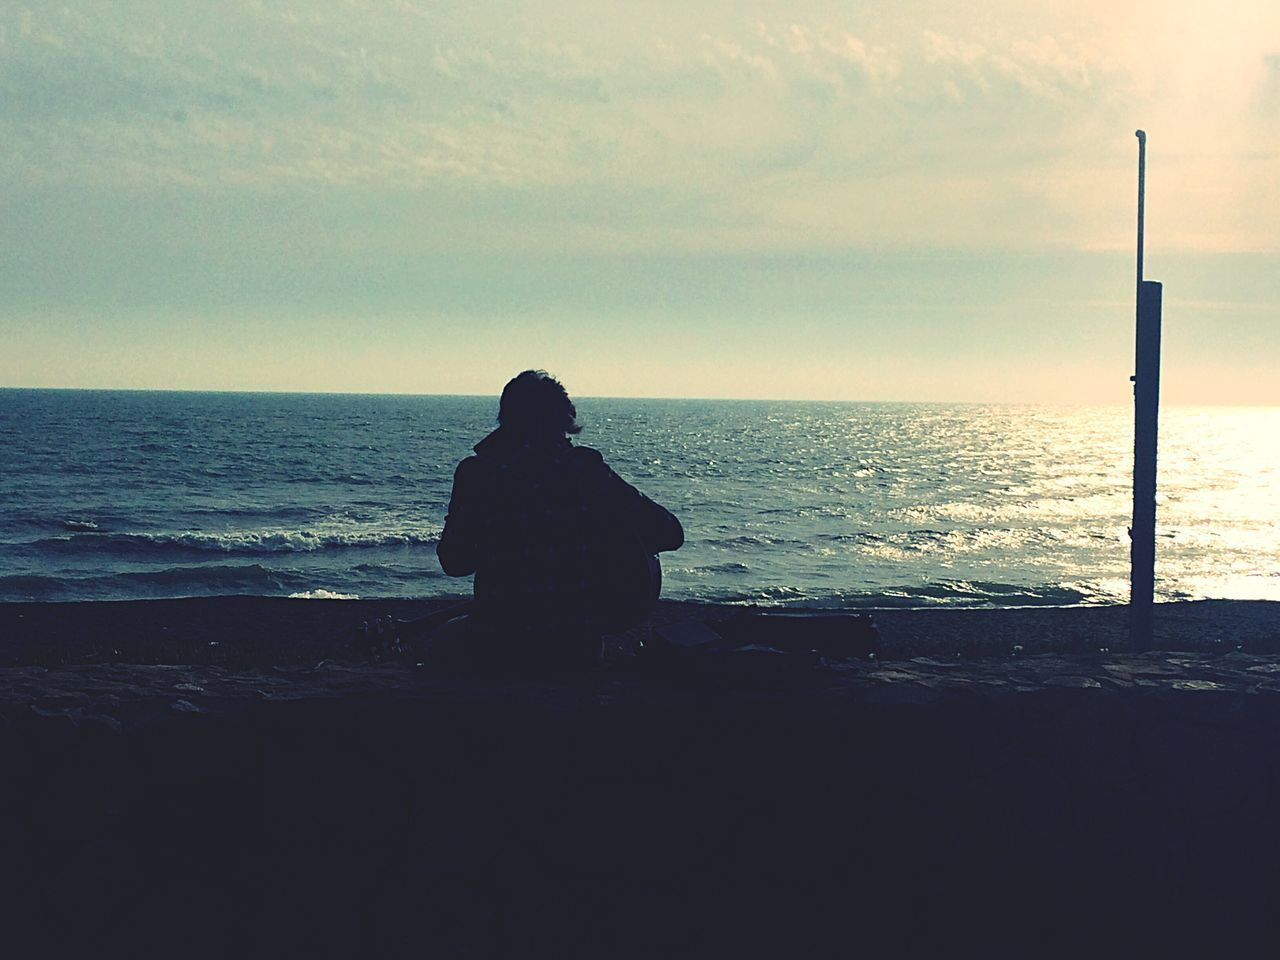 sea, horizon over water, water, nature, silhouette, beauty in nature, tranquil scene, scenics, beach, one person, sky, standing, tranquility, real people, rear view, leisure activity, outdoors, sunset, vacations, men, full length, day, people